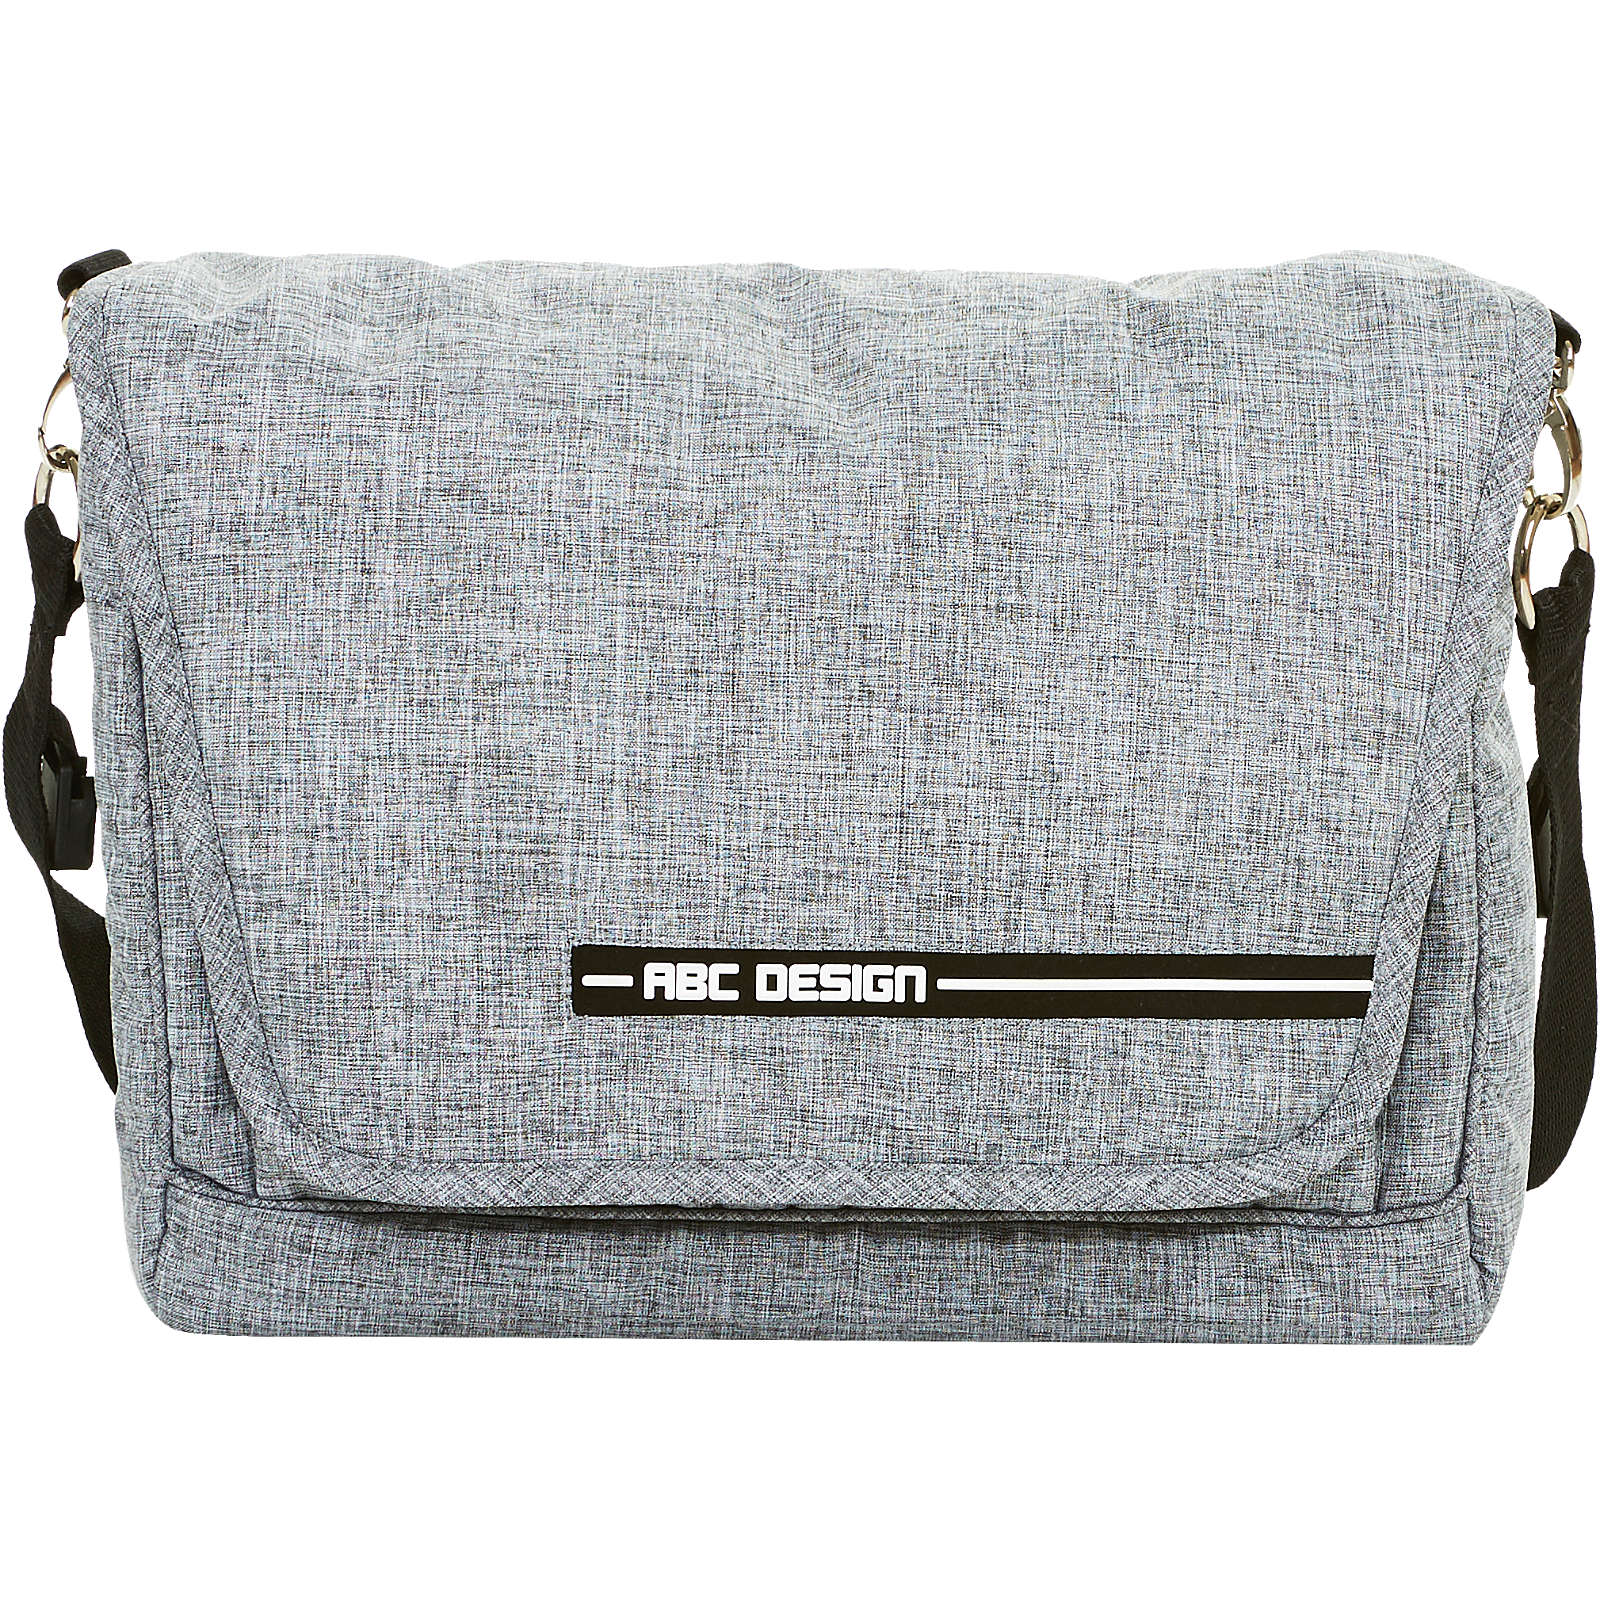 ABC Design Wickeltasche Fashion, graphite grey hellgrau